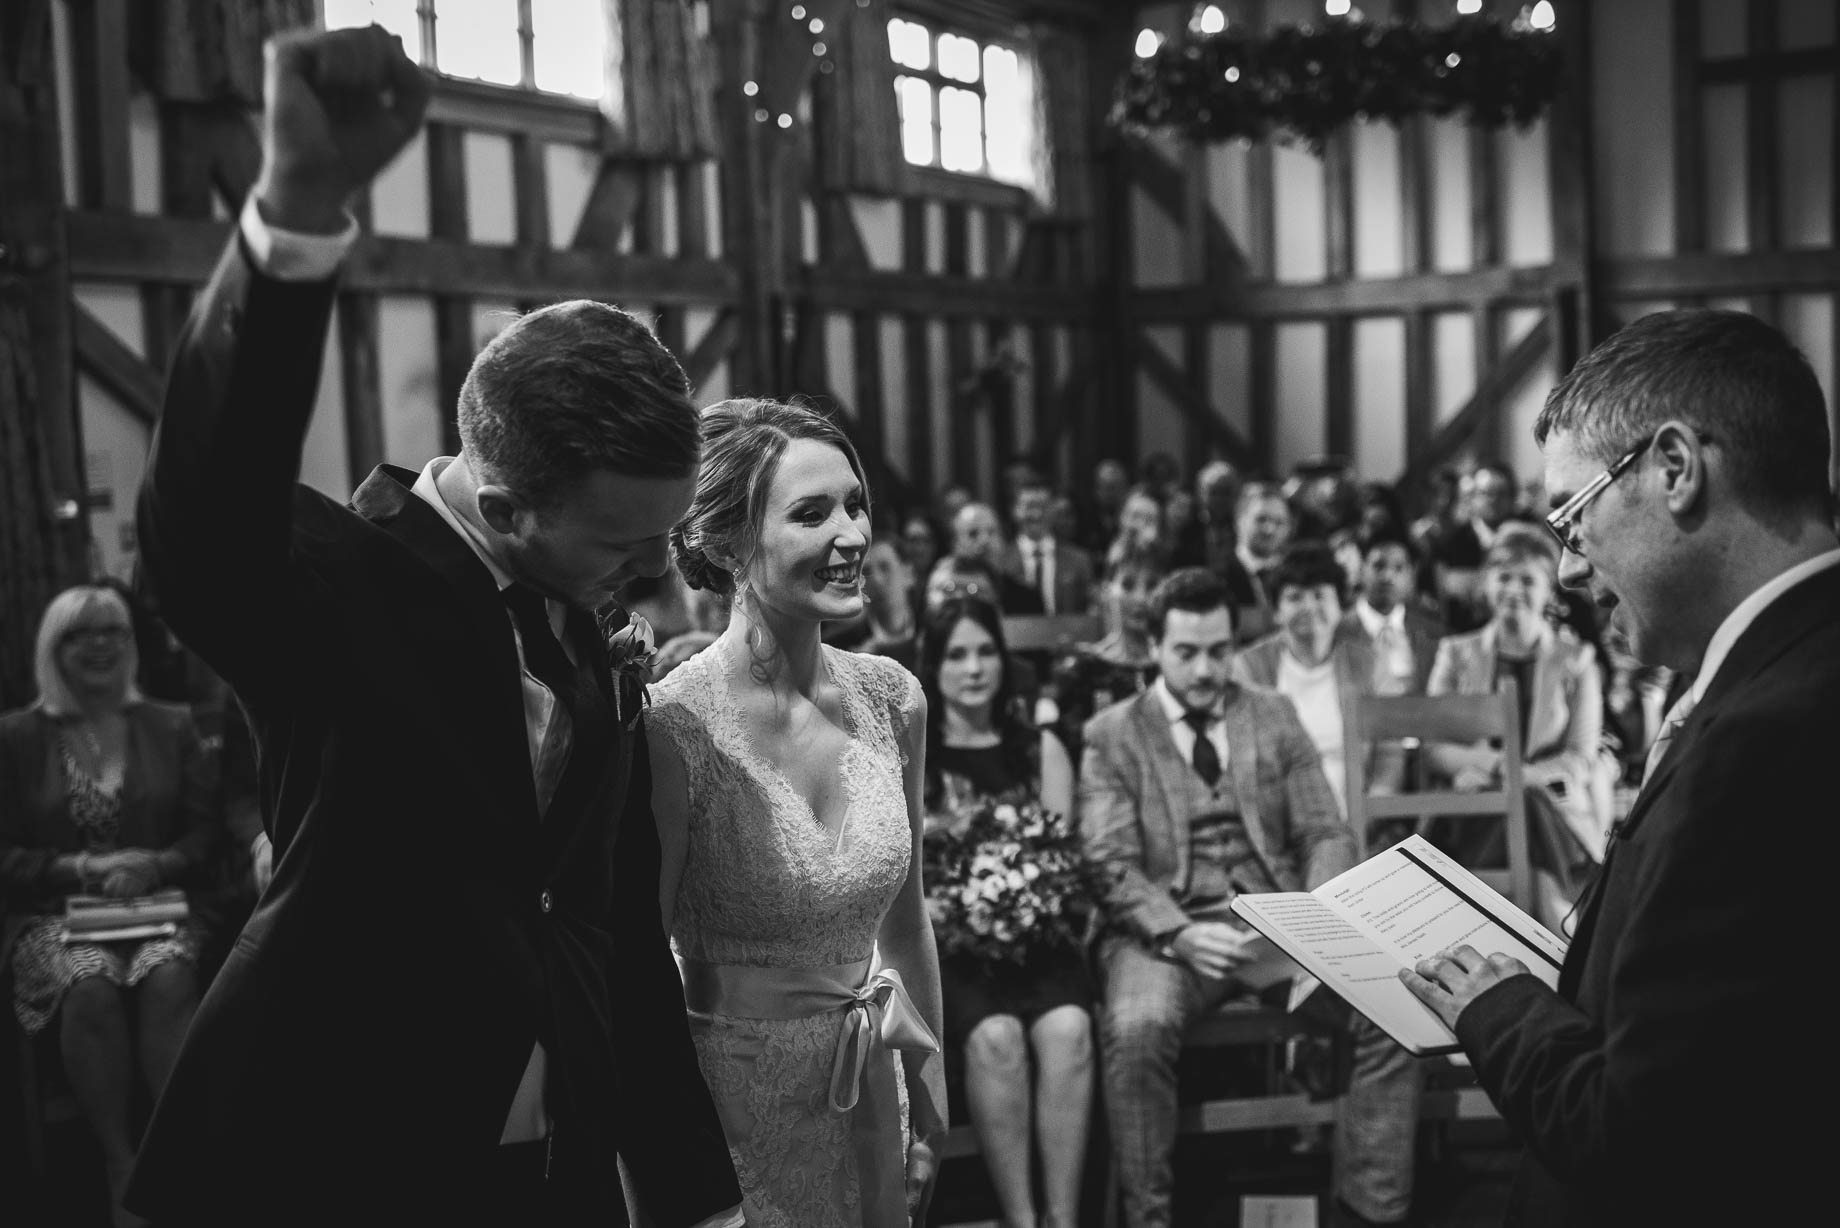 Surrey Wedding Photography by Guy Collier - Becca and James (44 of 145)